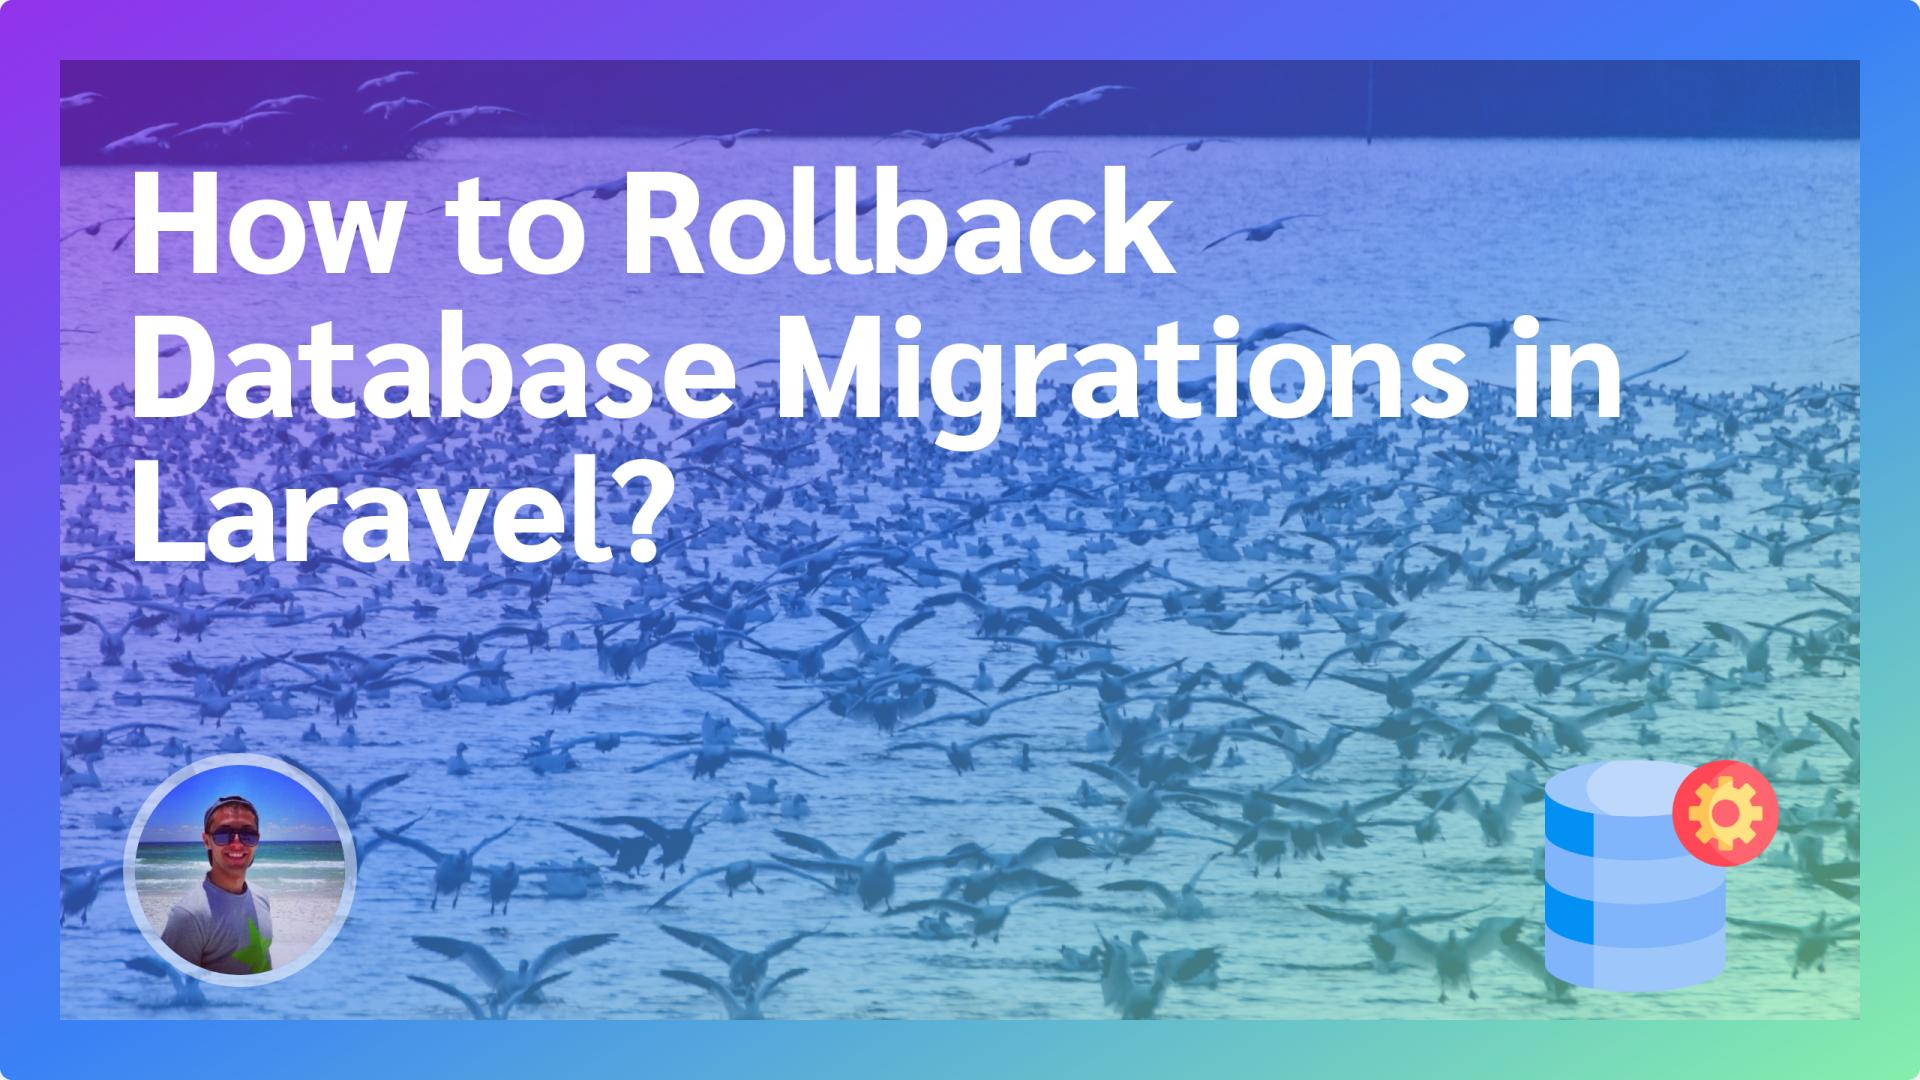 How to Rollback Database Migrations in Laravel?